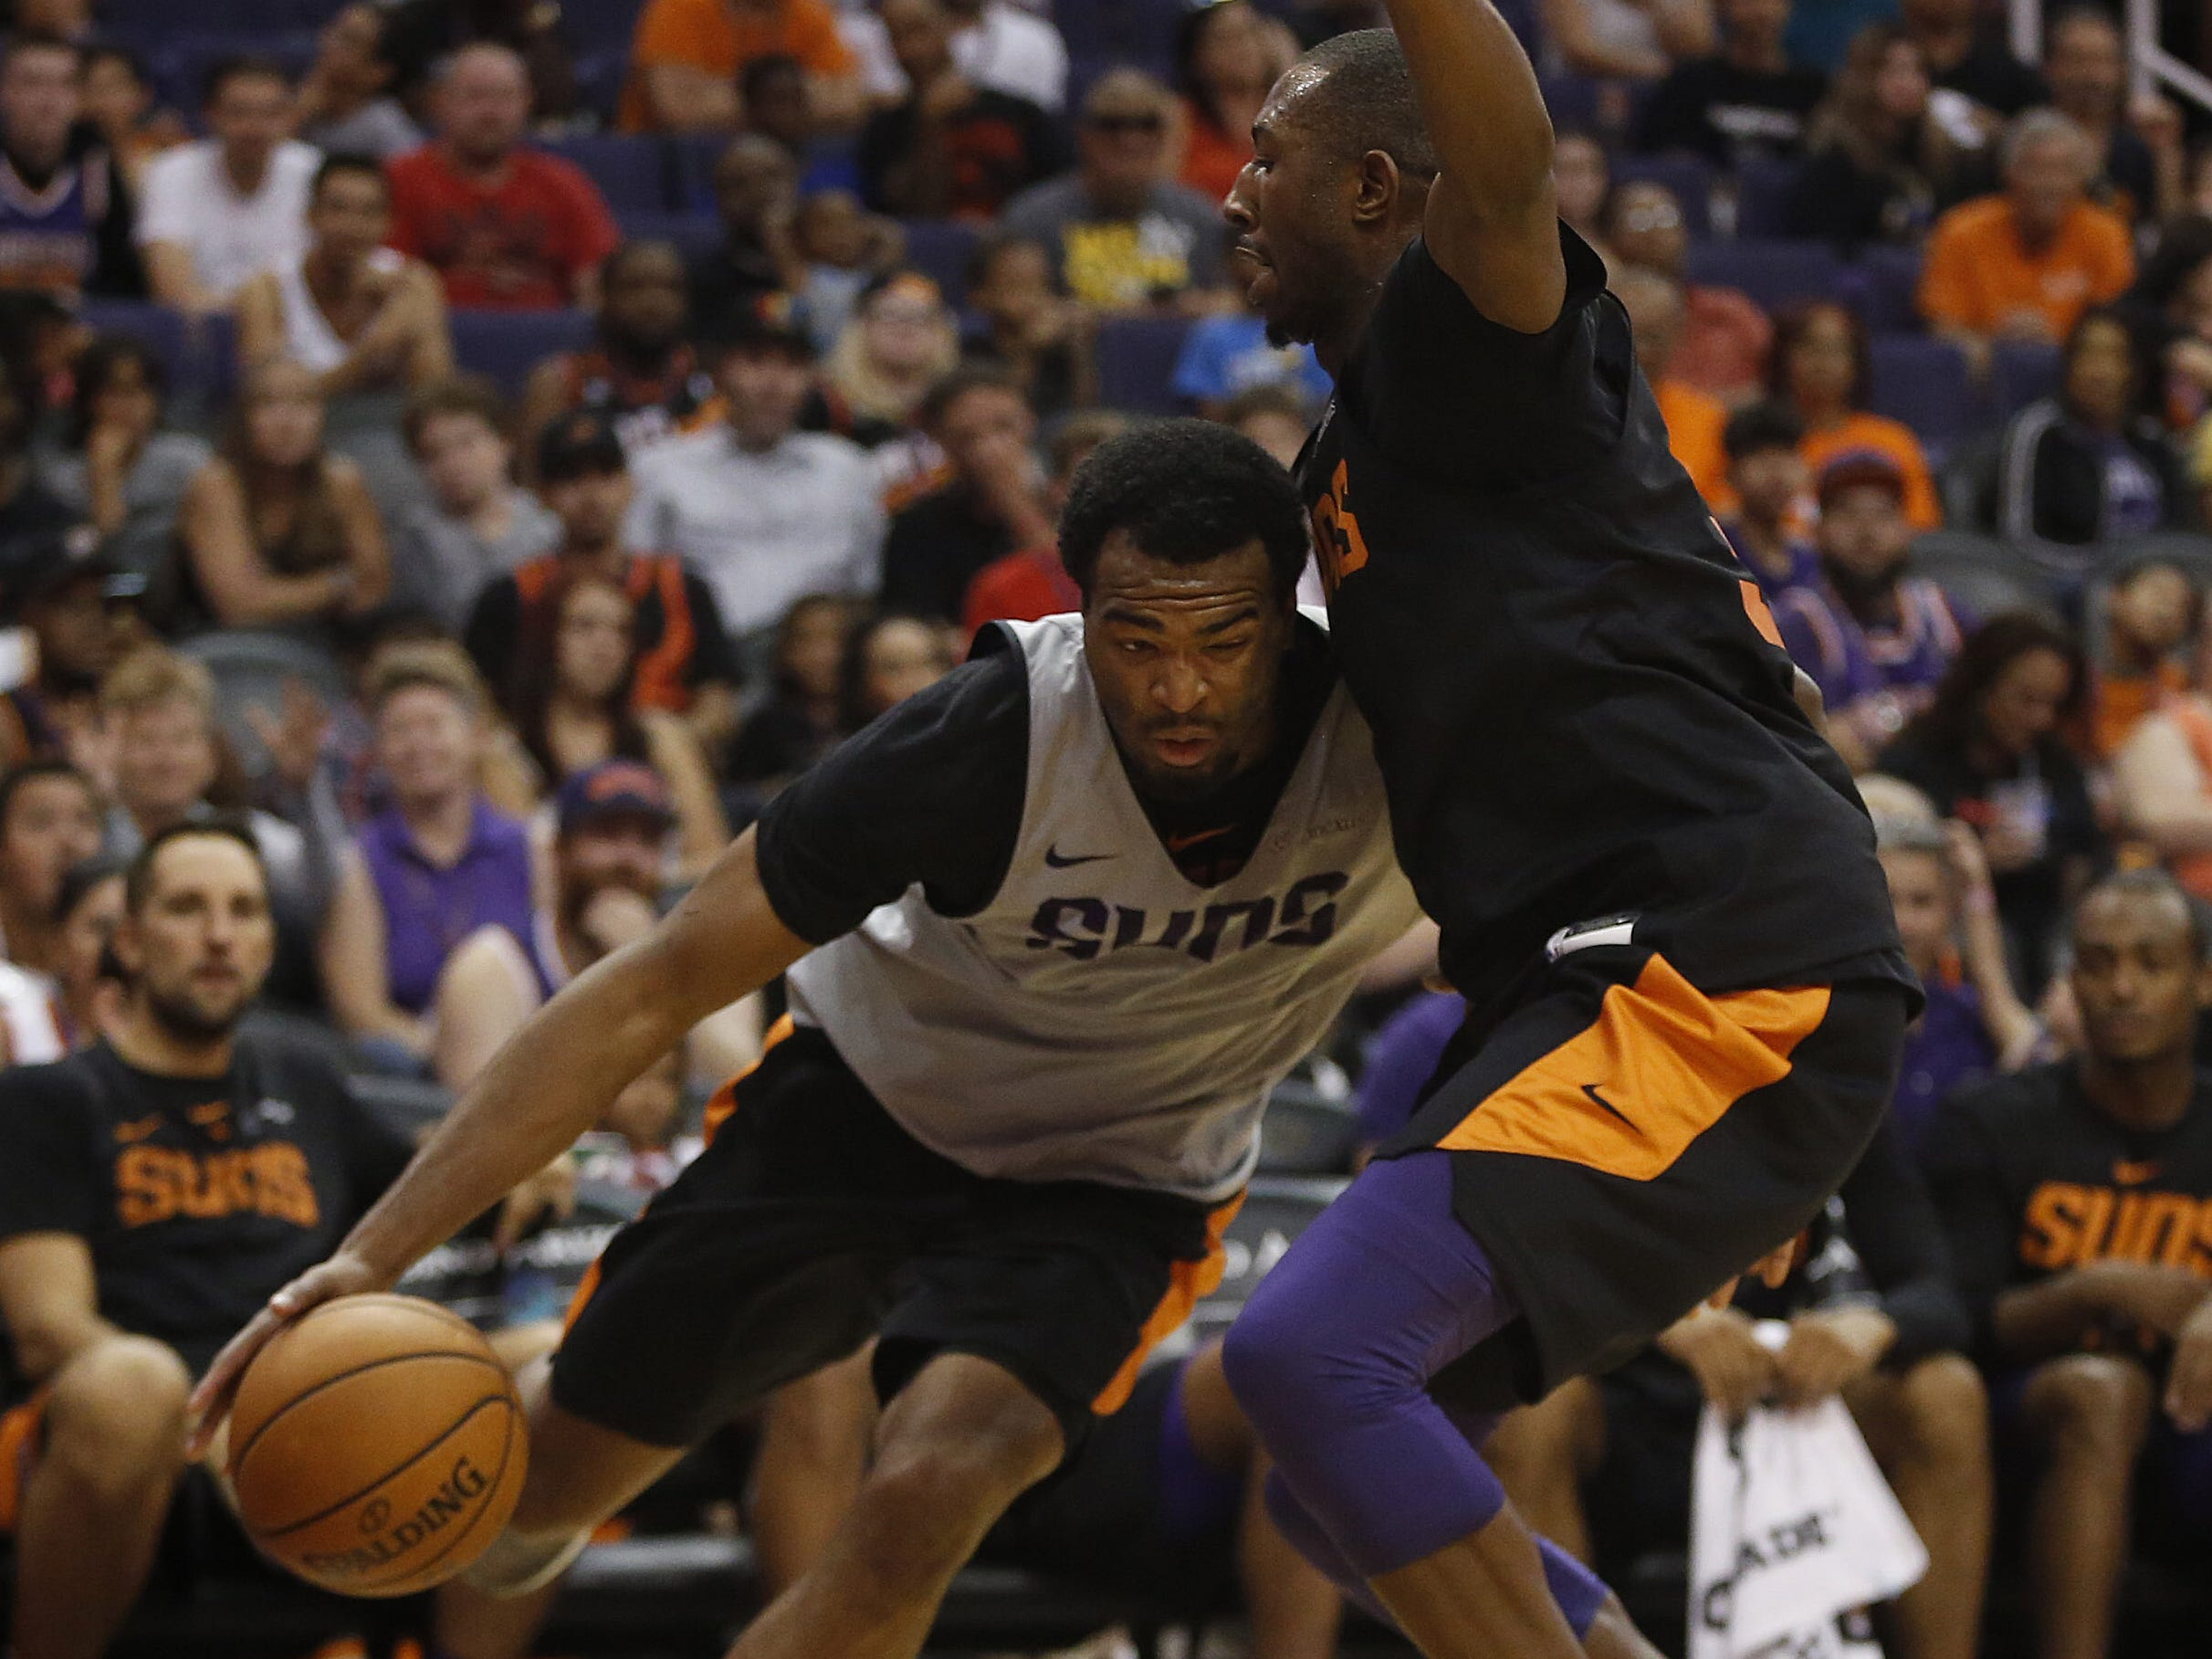 Suns TJ Warren drives against Davon Reed during an Open Practice at Talking Stick Resort Arena in Phoenix, Ariz. on Sept. 29, 2018.